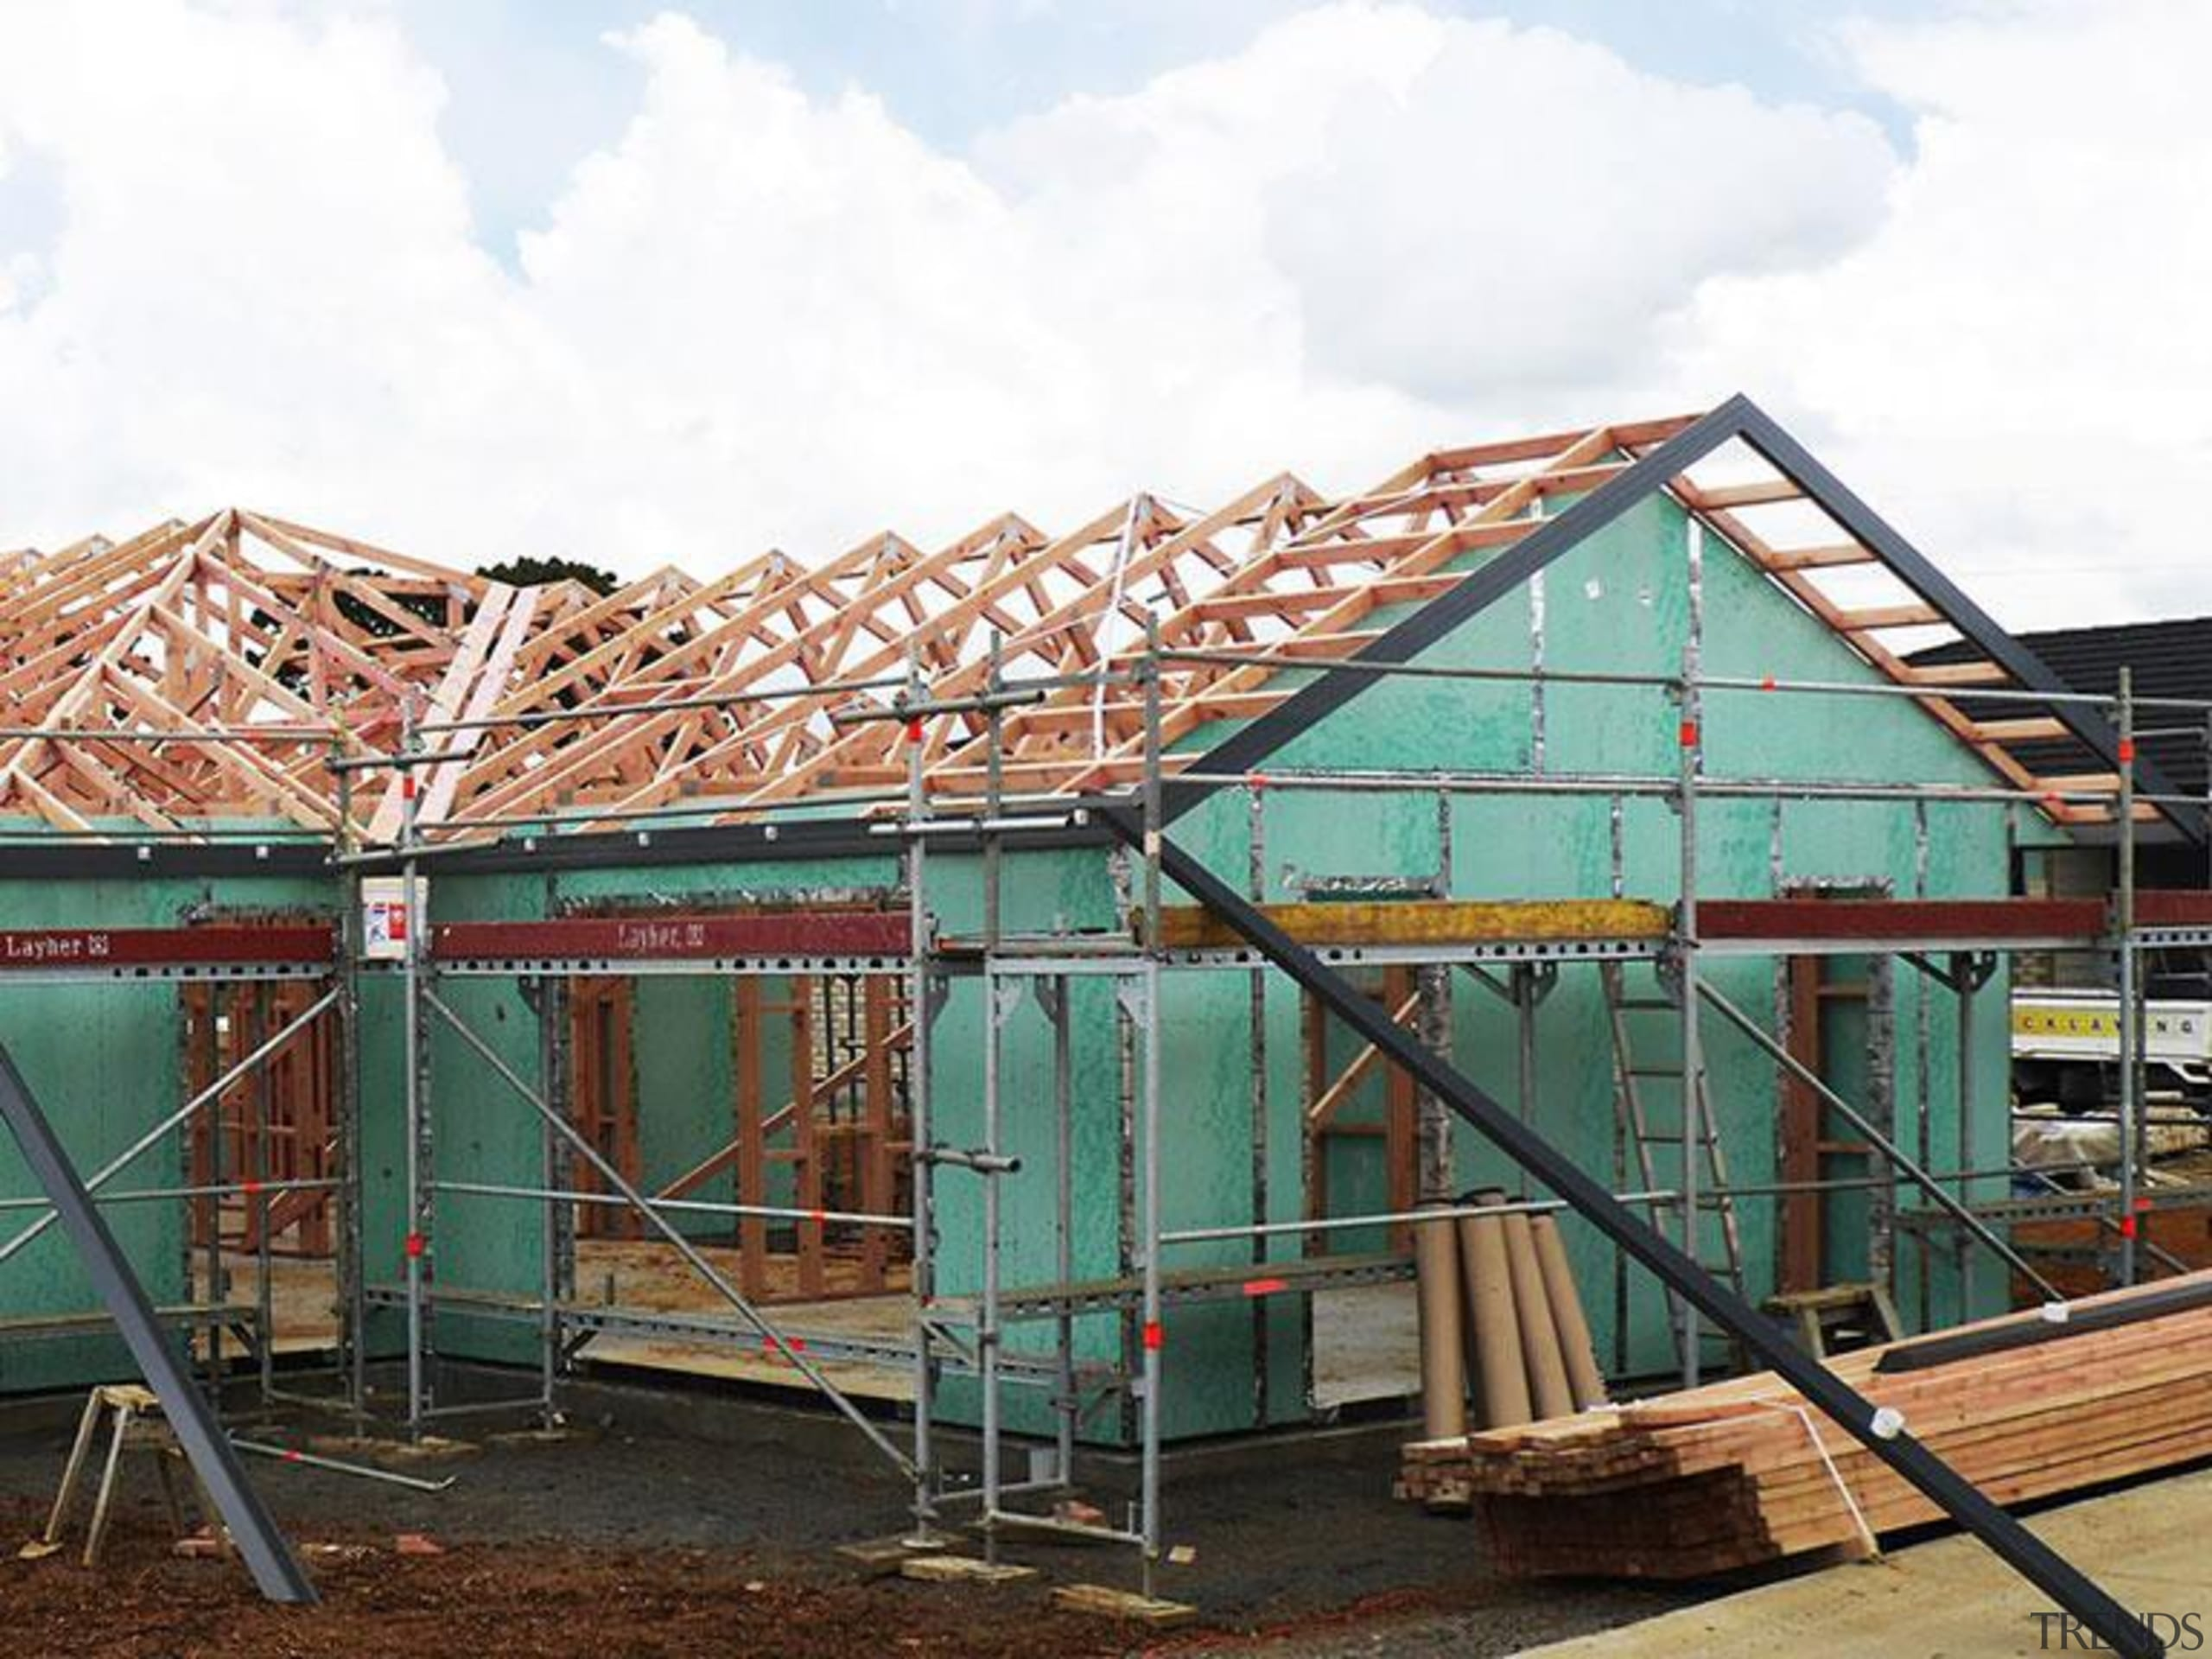 RAB pre - Cladding 2 - RAB pre construction, facade, roof, scaffolding, structure, white